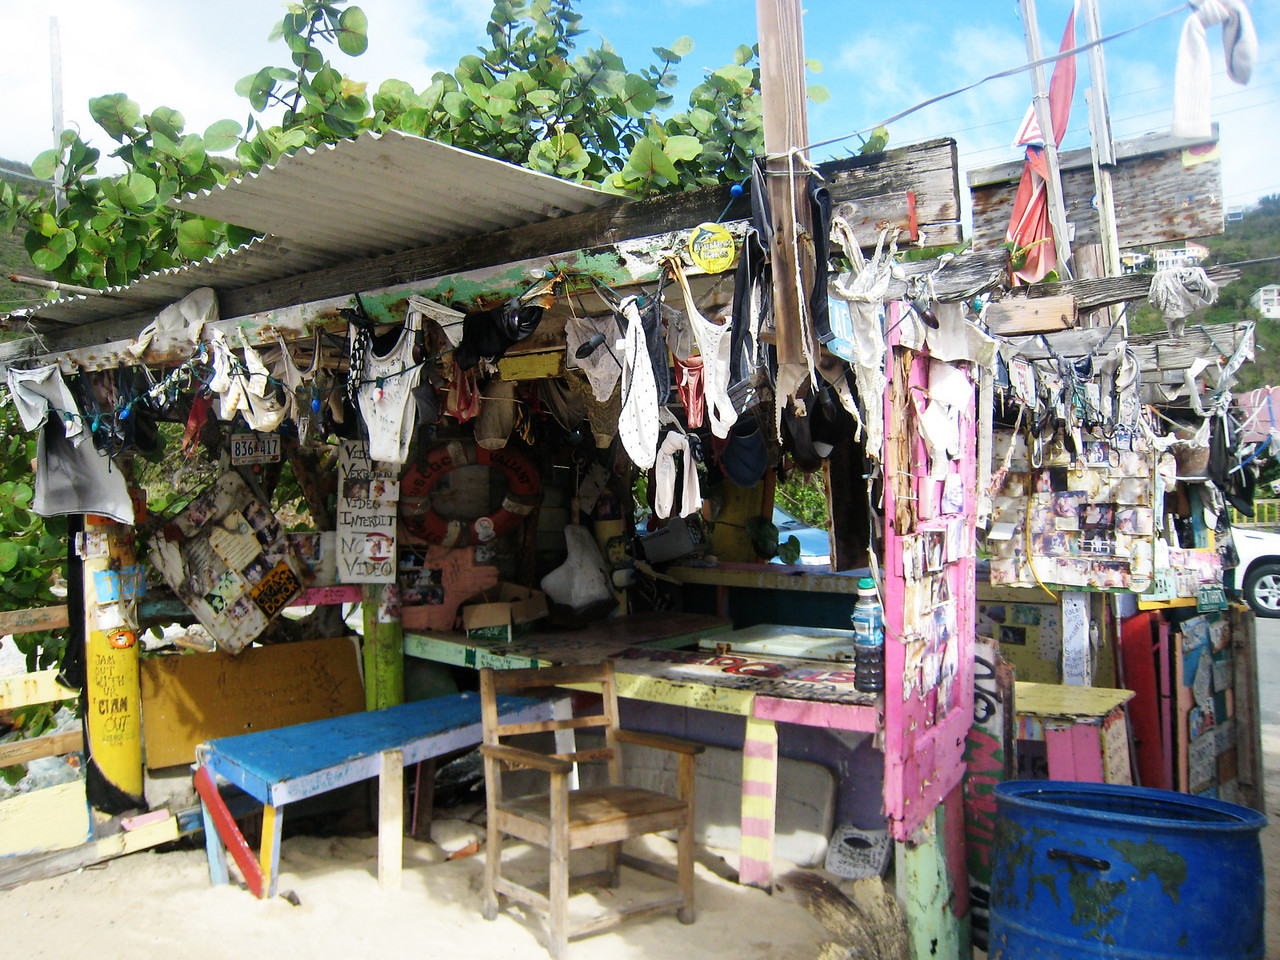 Bomba's shack - he throws full moon parties where apparently lots of panties get left behind